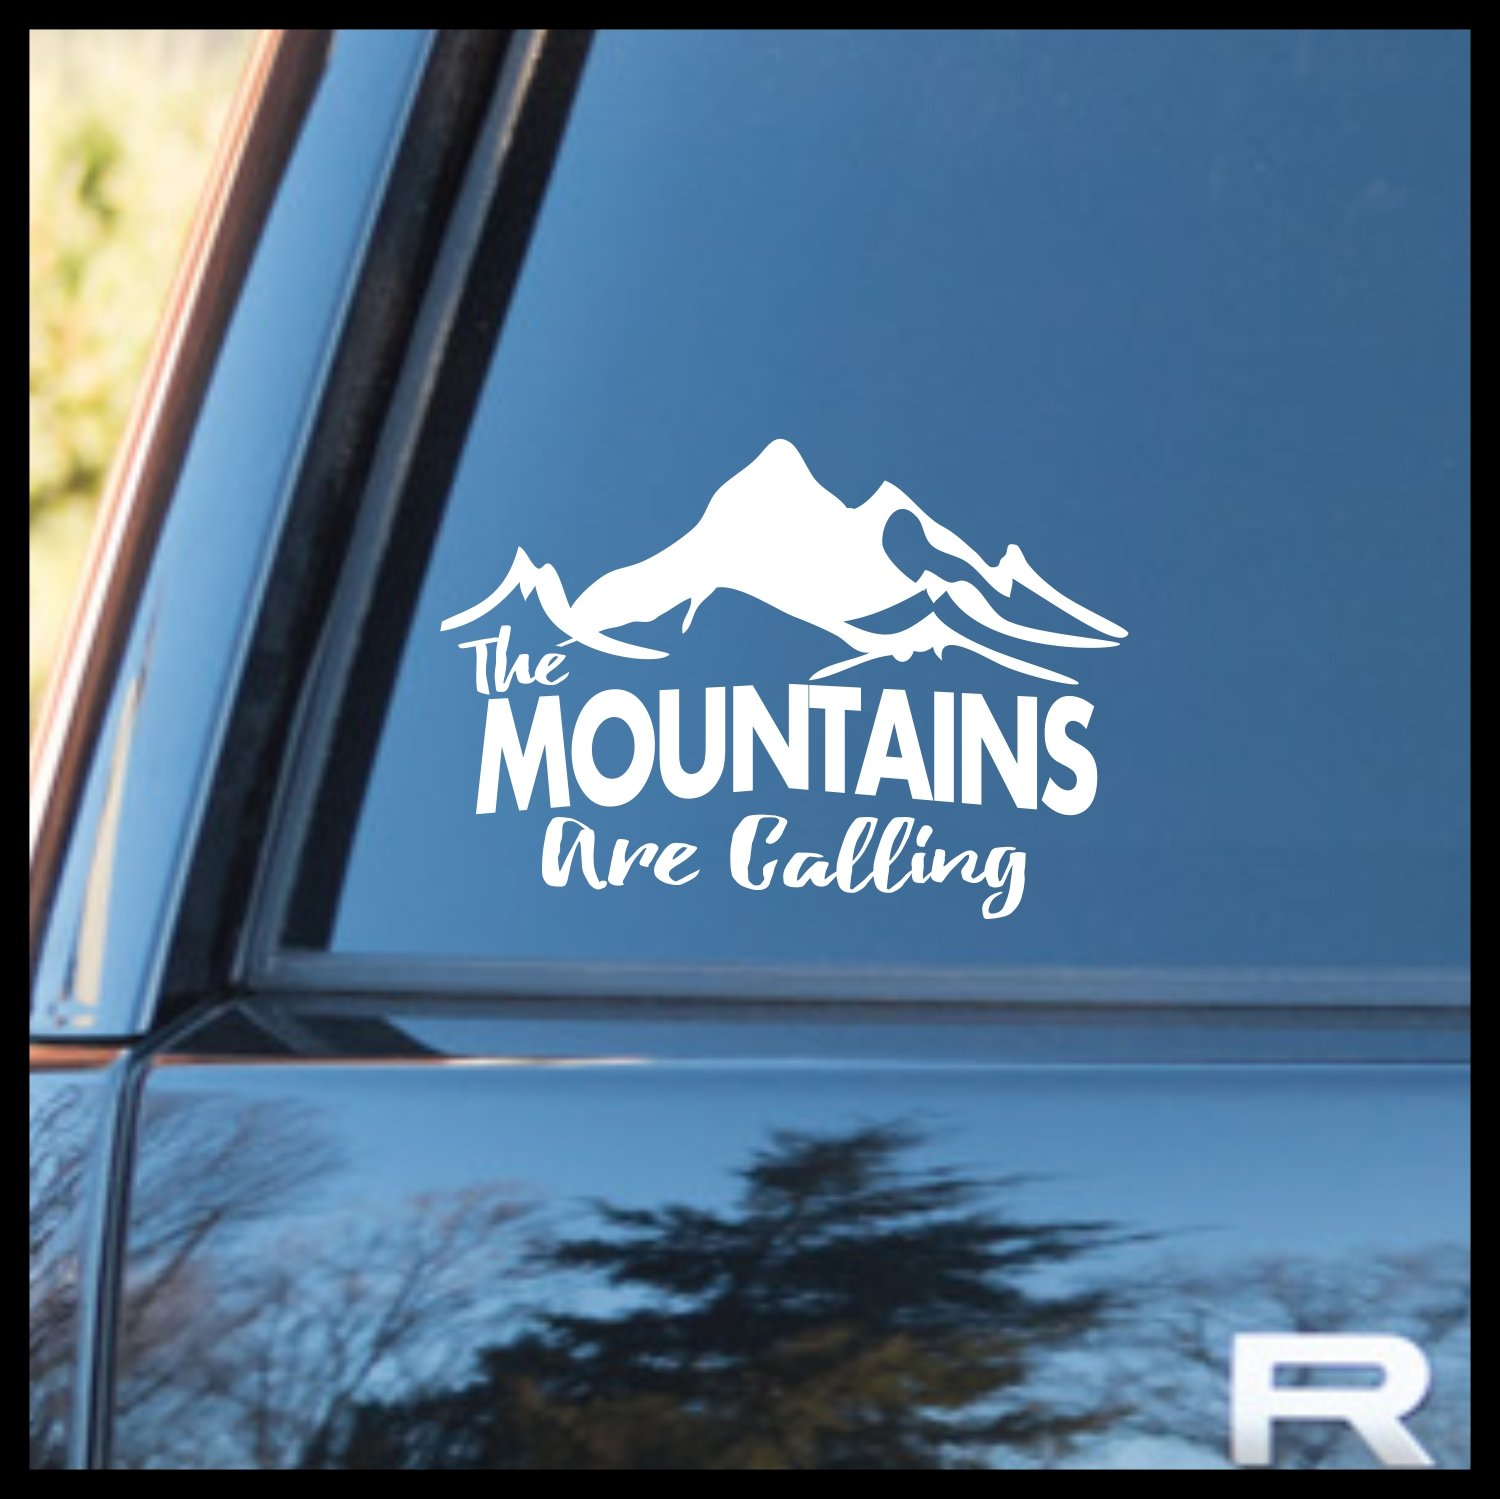 The Mountains Are Calling, Nature Calls Mirror Motivation Vinyl Car Decal